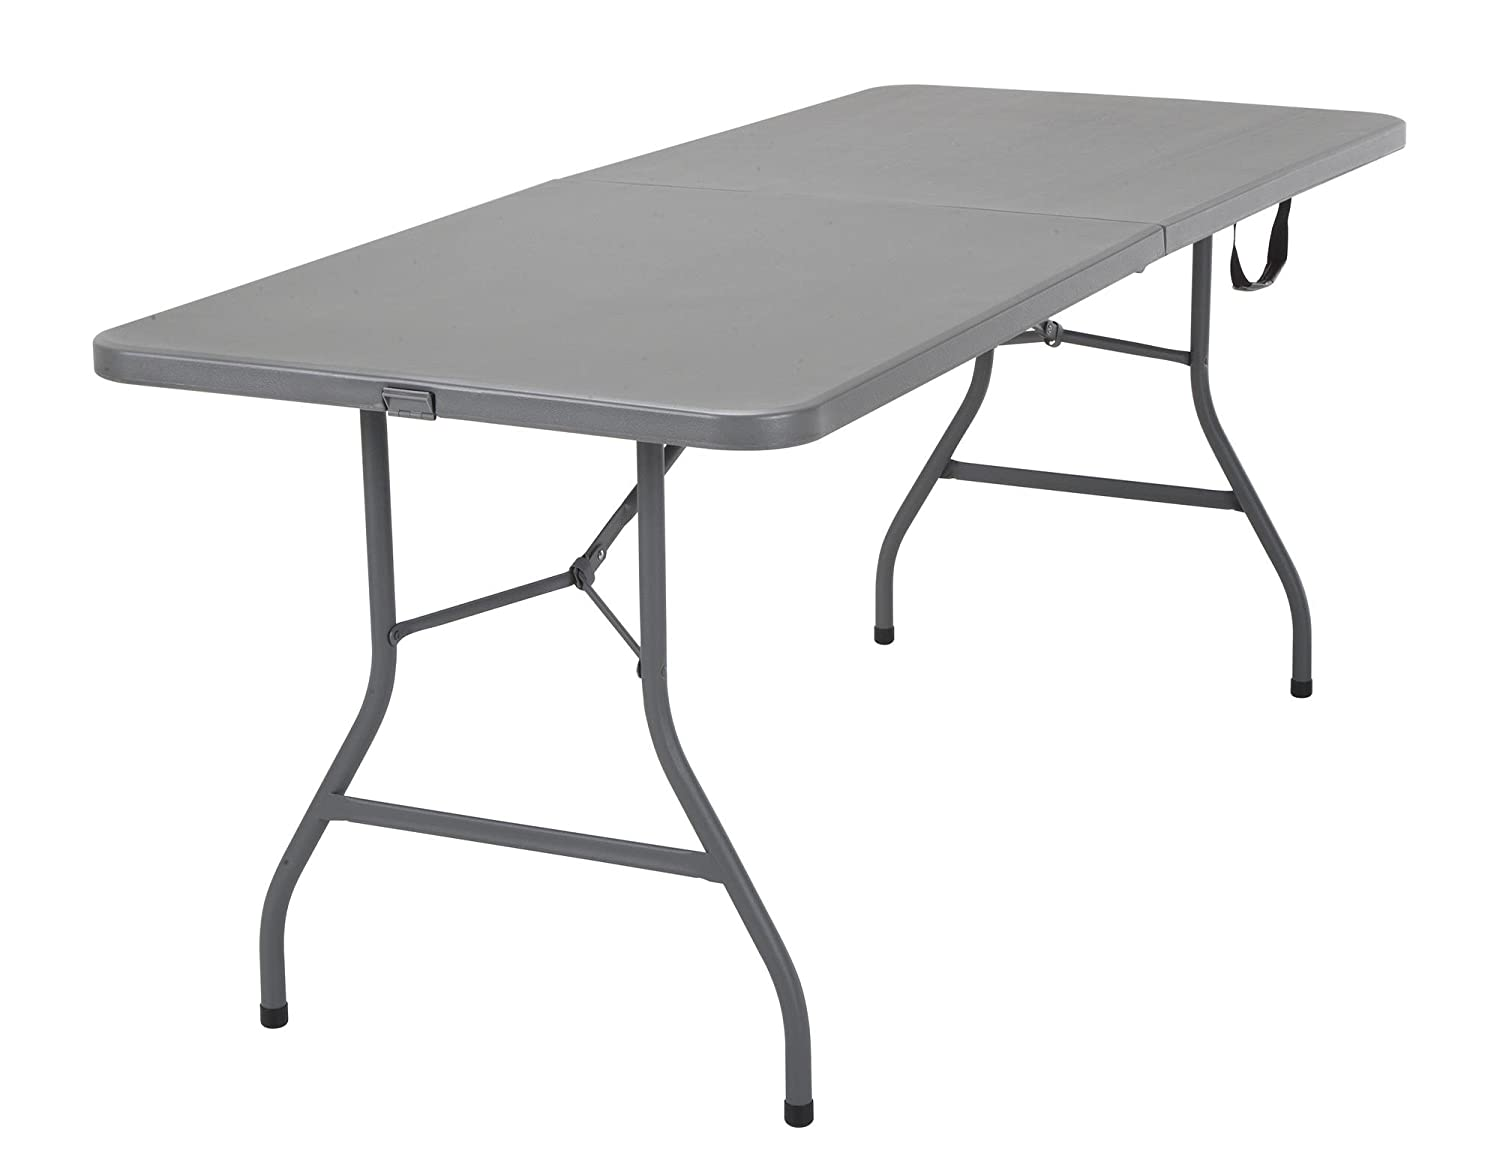 6' Signature Series Blow Mold Centerfold Table, Gray